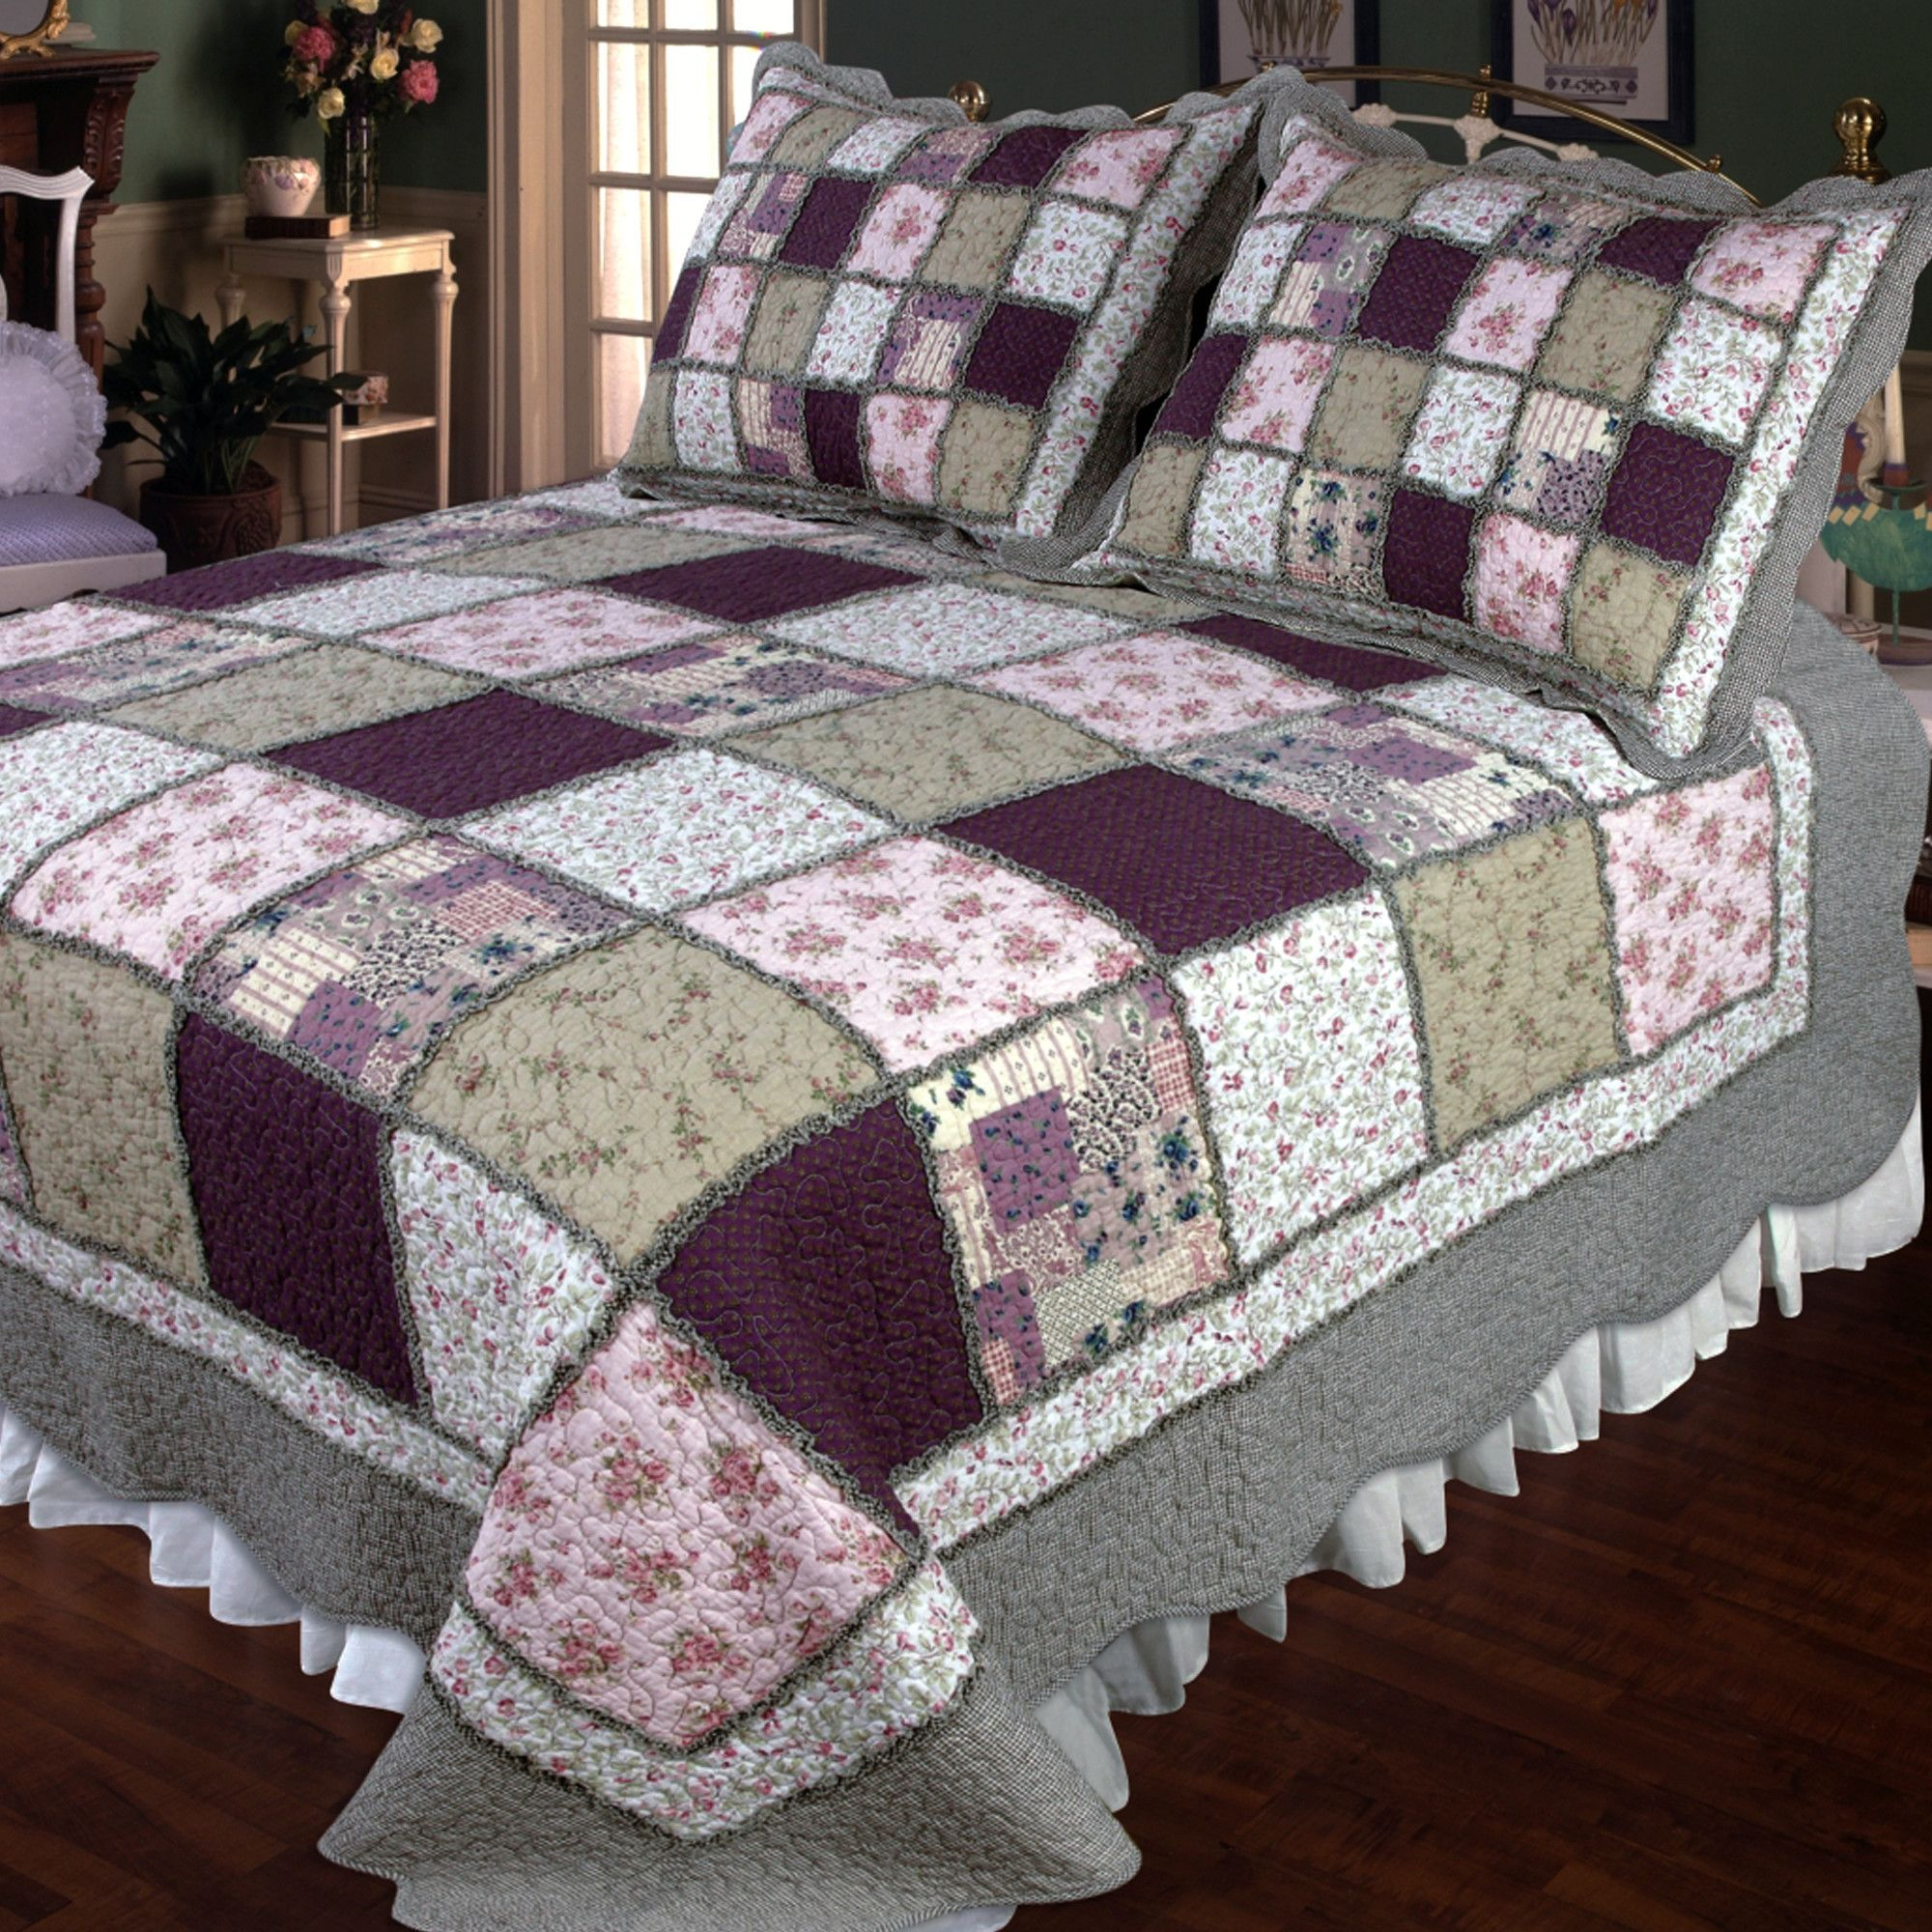 lavender double my mustard bow in king sheets comforter outfitters magical colonel quilt duvet and cover gray galaxy yellow full plum princess from set uk bedspread urban light thinking linen covers white bag fabulous of purple medallion bedroom size sets bedding xmas farah